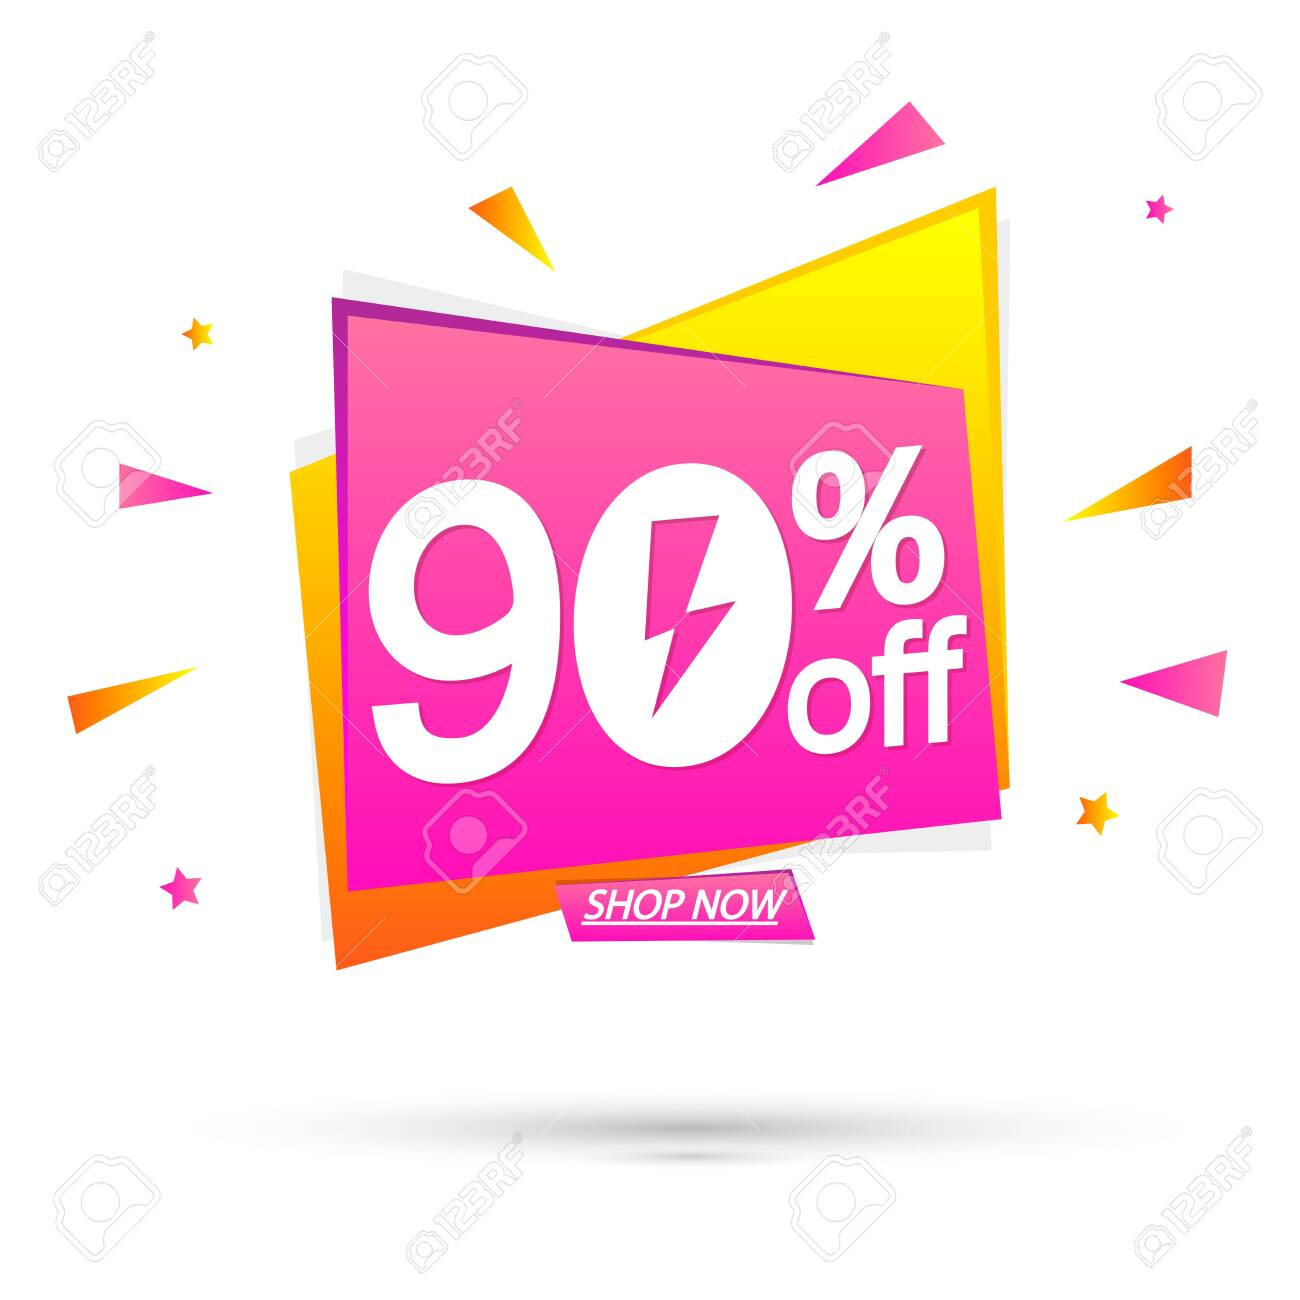 Sale 90% off, special offer, banner design template, discount tag, app icon, vector illustration - 150193153